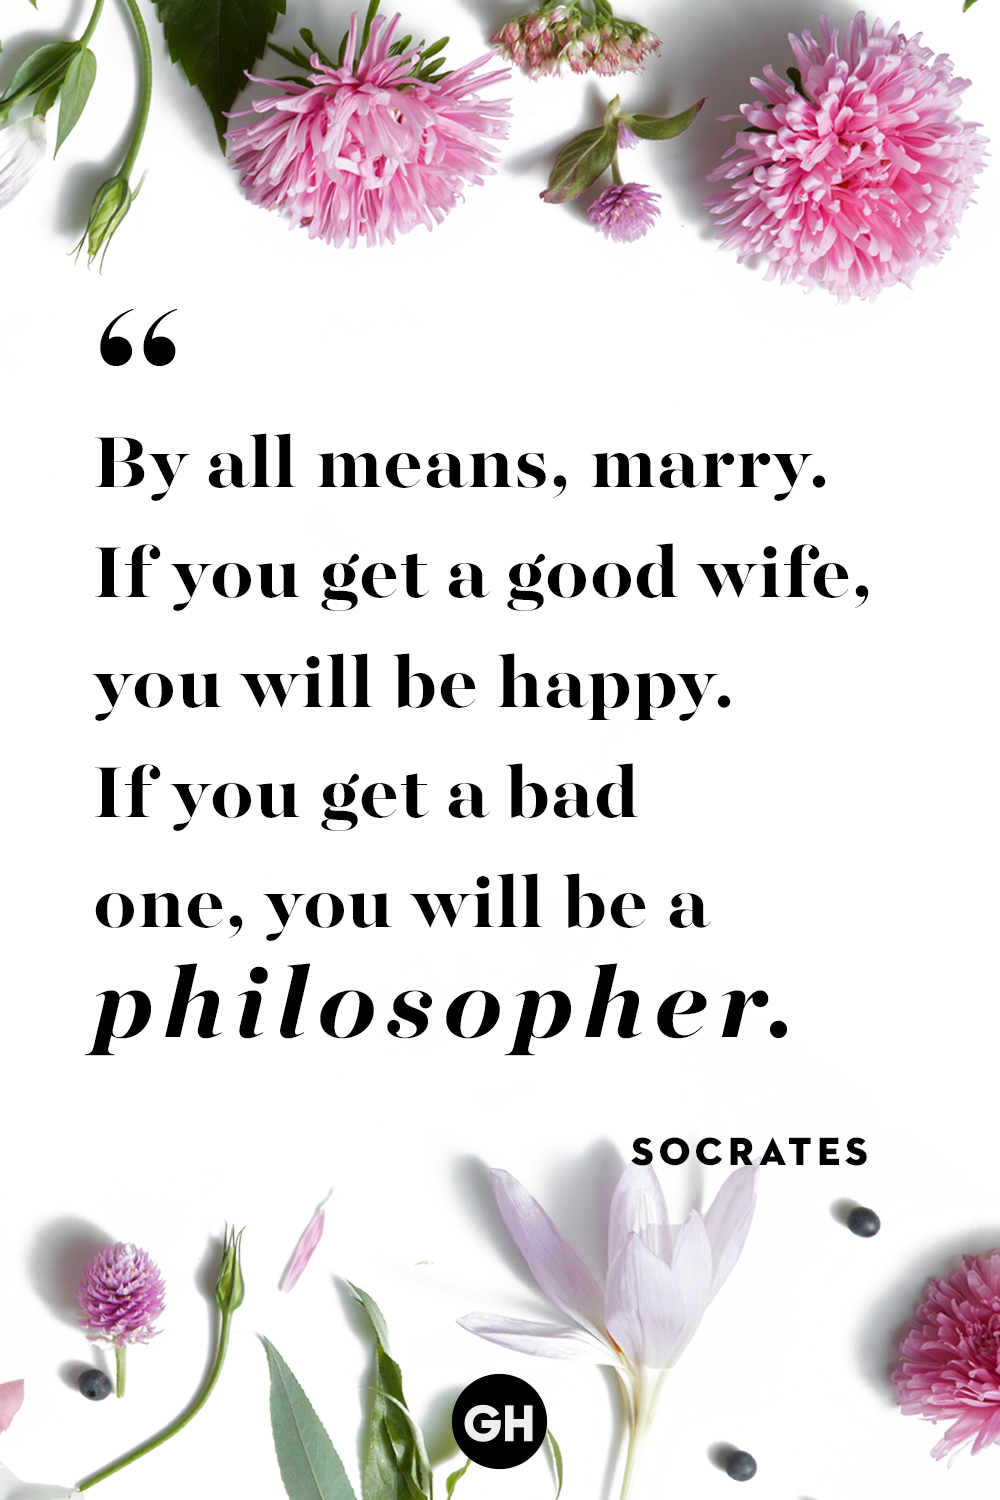 Funny, Happy Marriage Quotes - Inspirational Words About Marriage